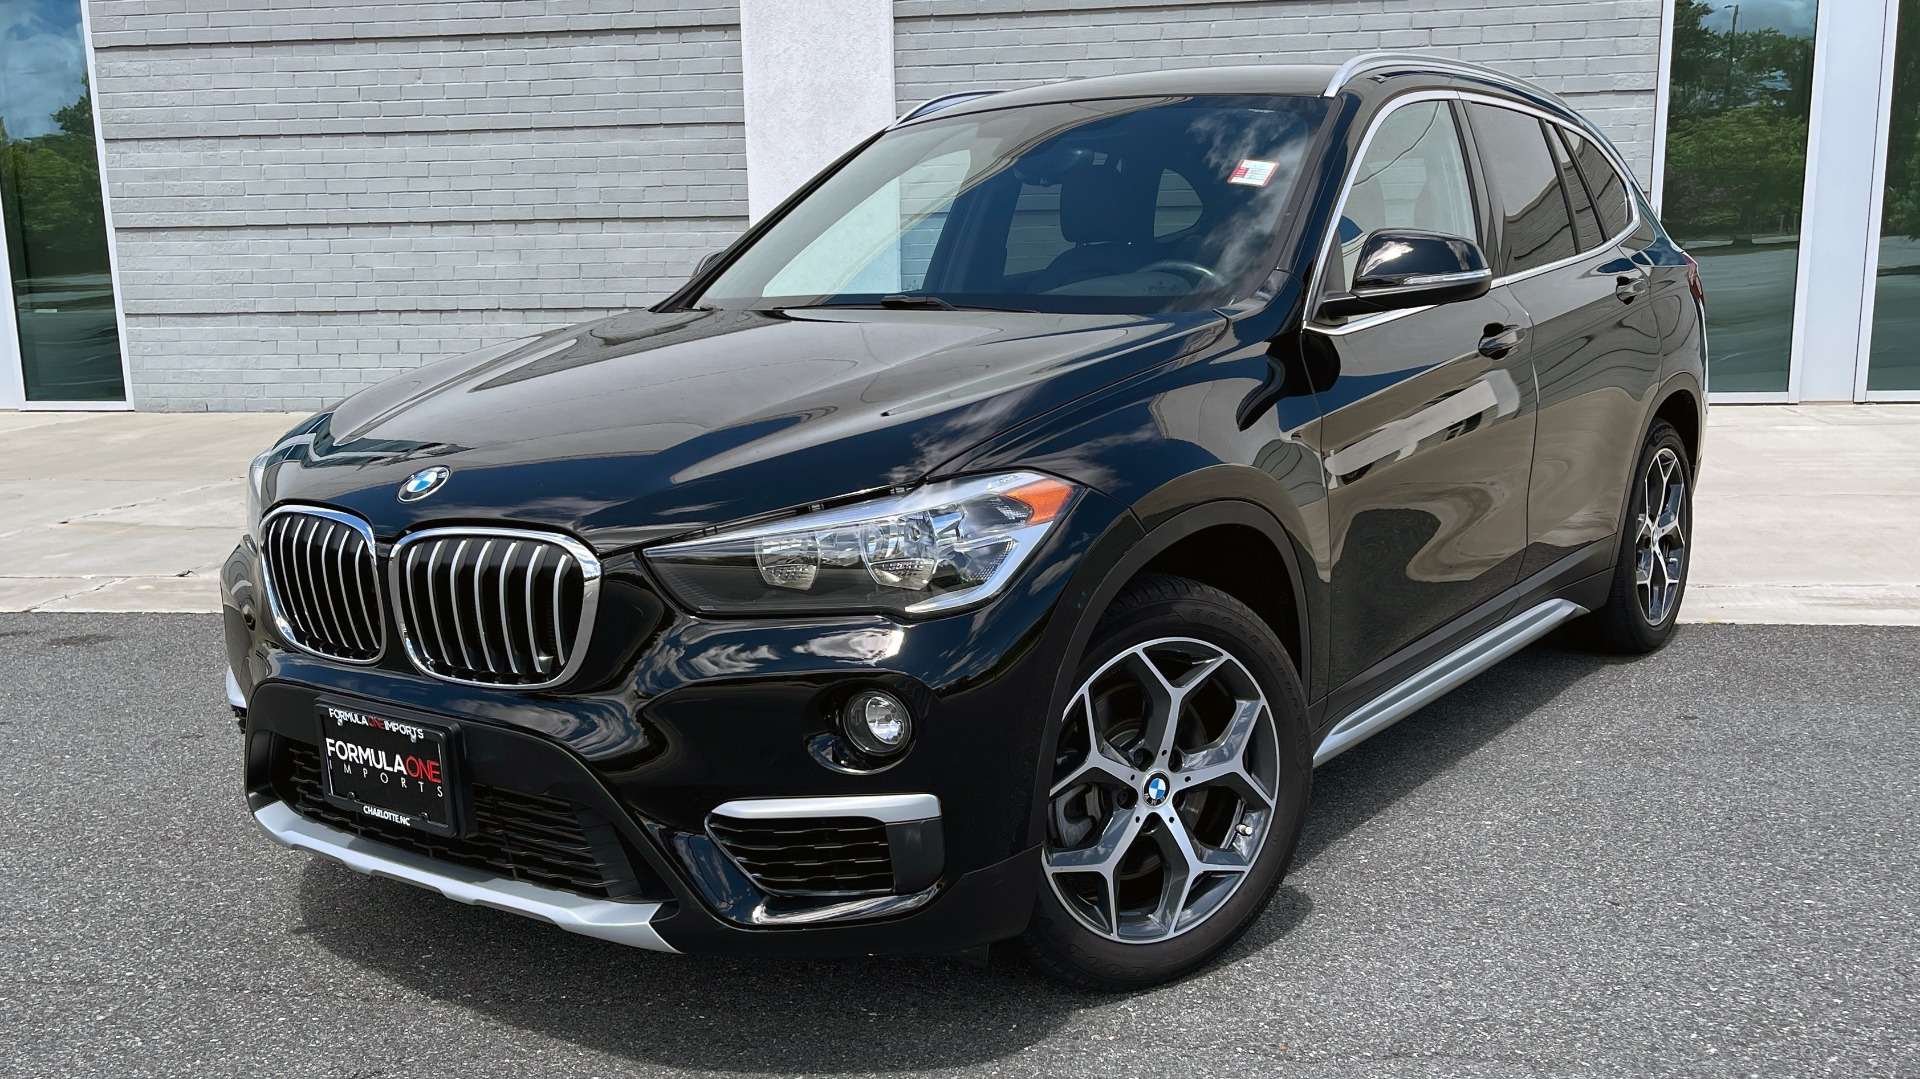 Used 2018 BMW X1 XDRIVE28I / 2.0L / AWD / 8-SPD AUTO / REARVIEW for sale $29,395 at Formula Imports in Charlotte NC 28227 1